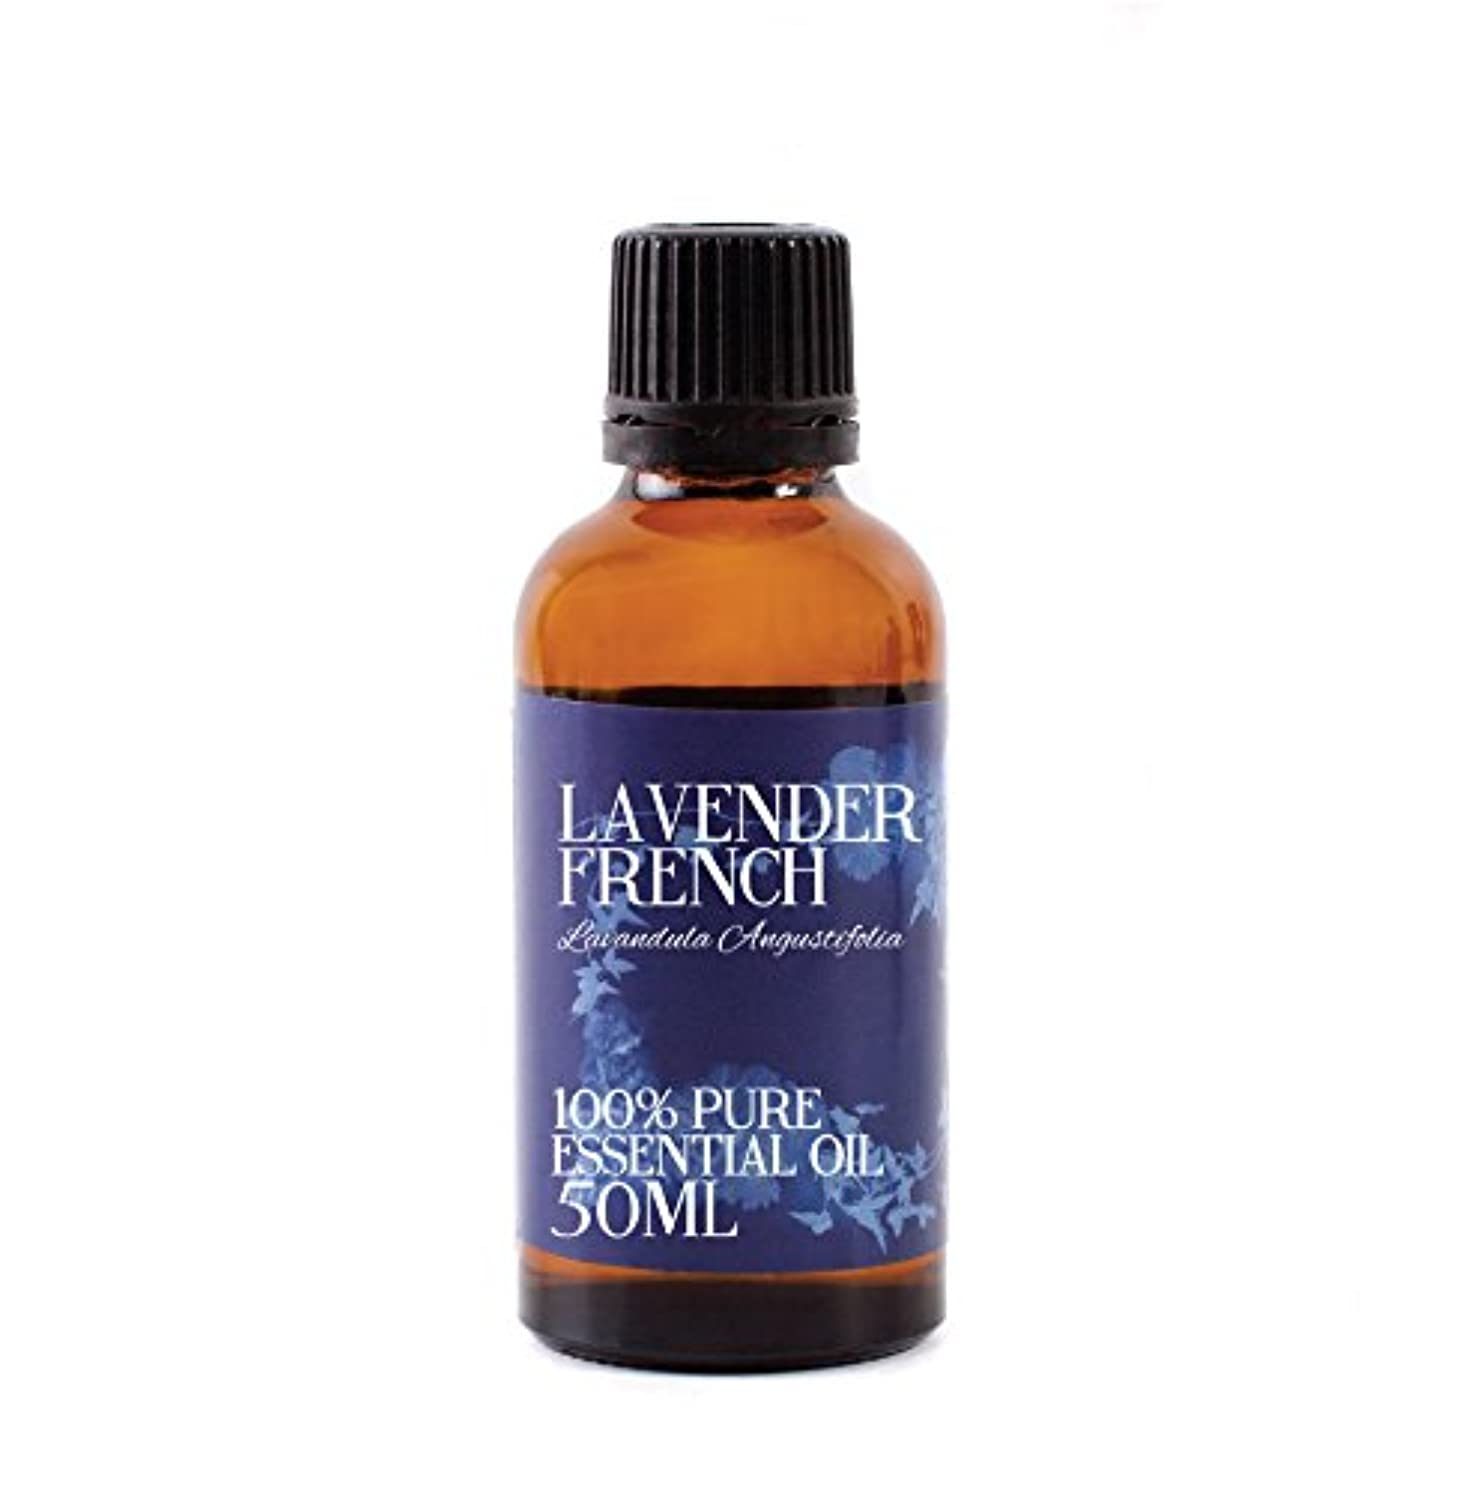 デッキ反応するコーンウォールMystic Moments | Lavender French Essential Oil - 50ml - 100% Pure